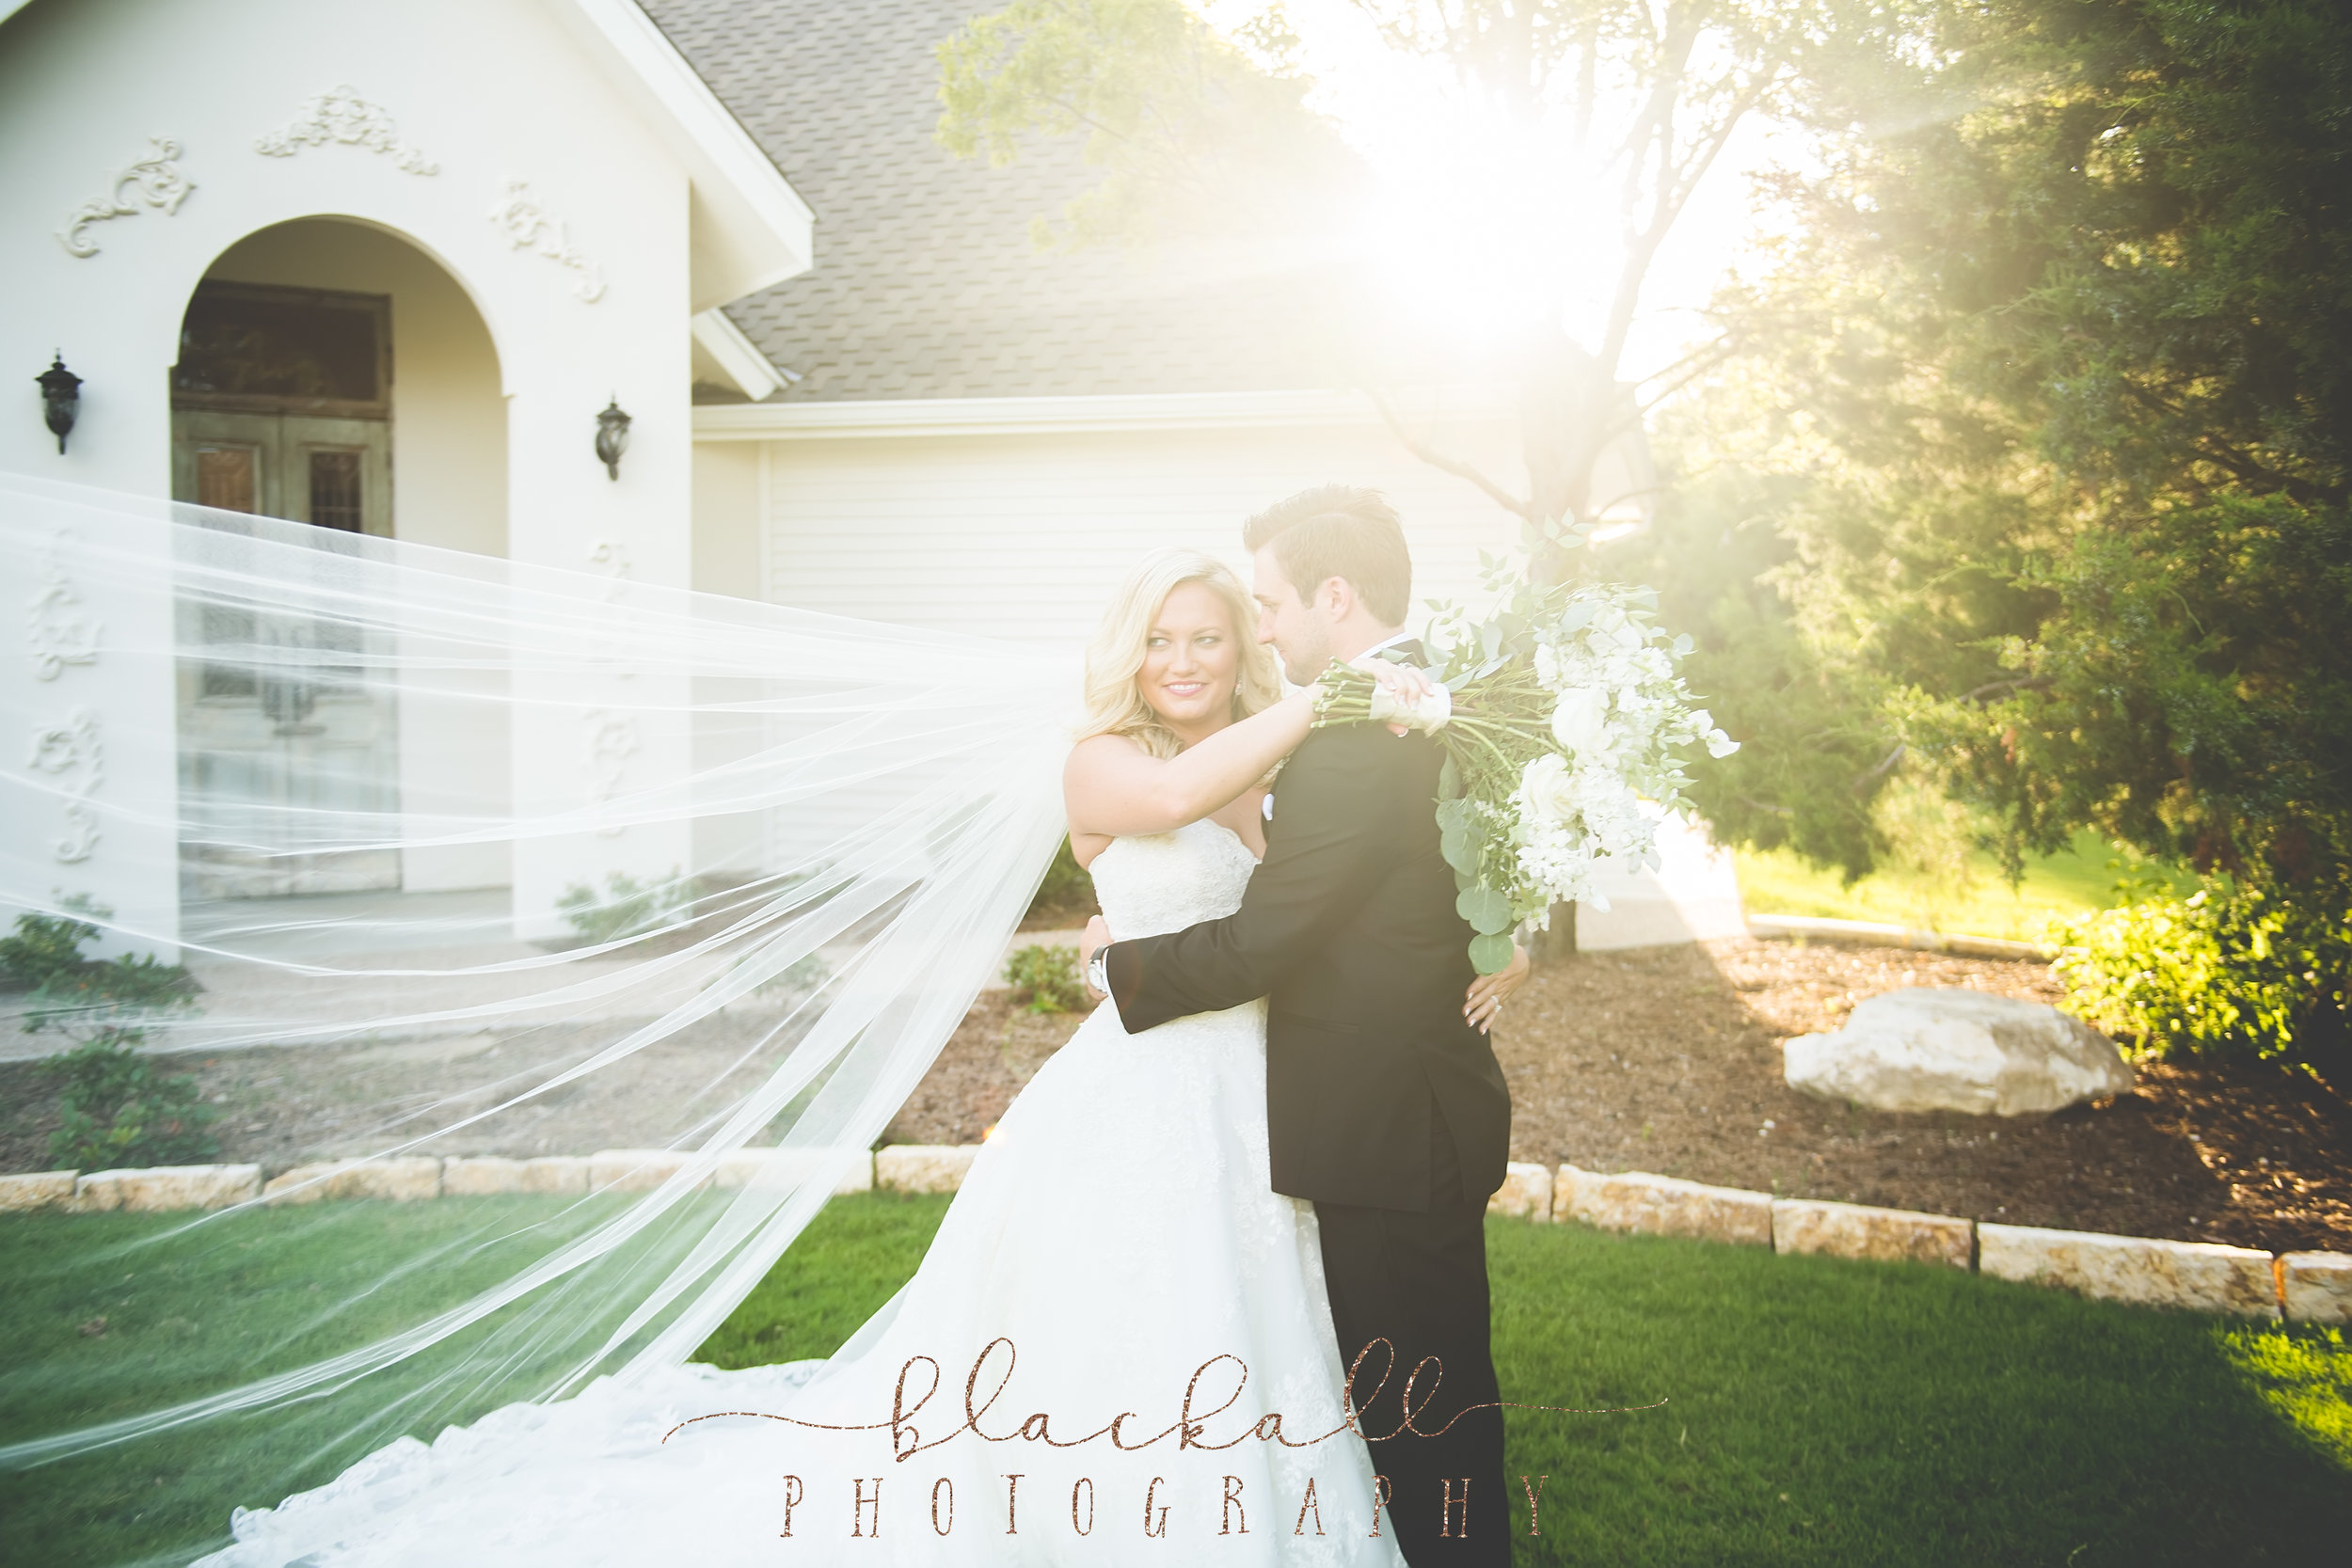 WEDDING_BlackallPhotography_40.JPG